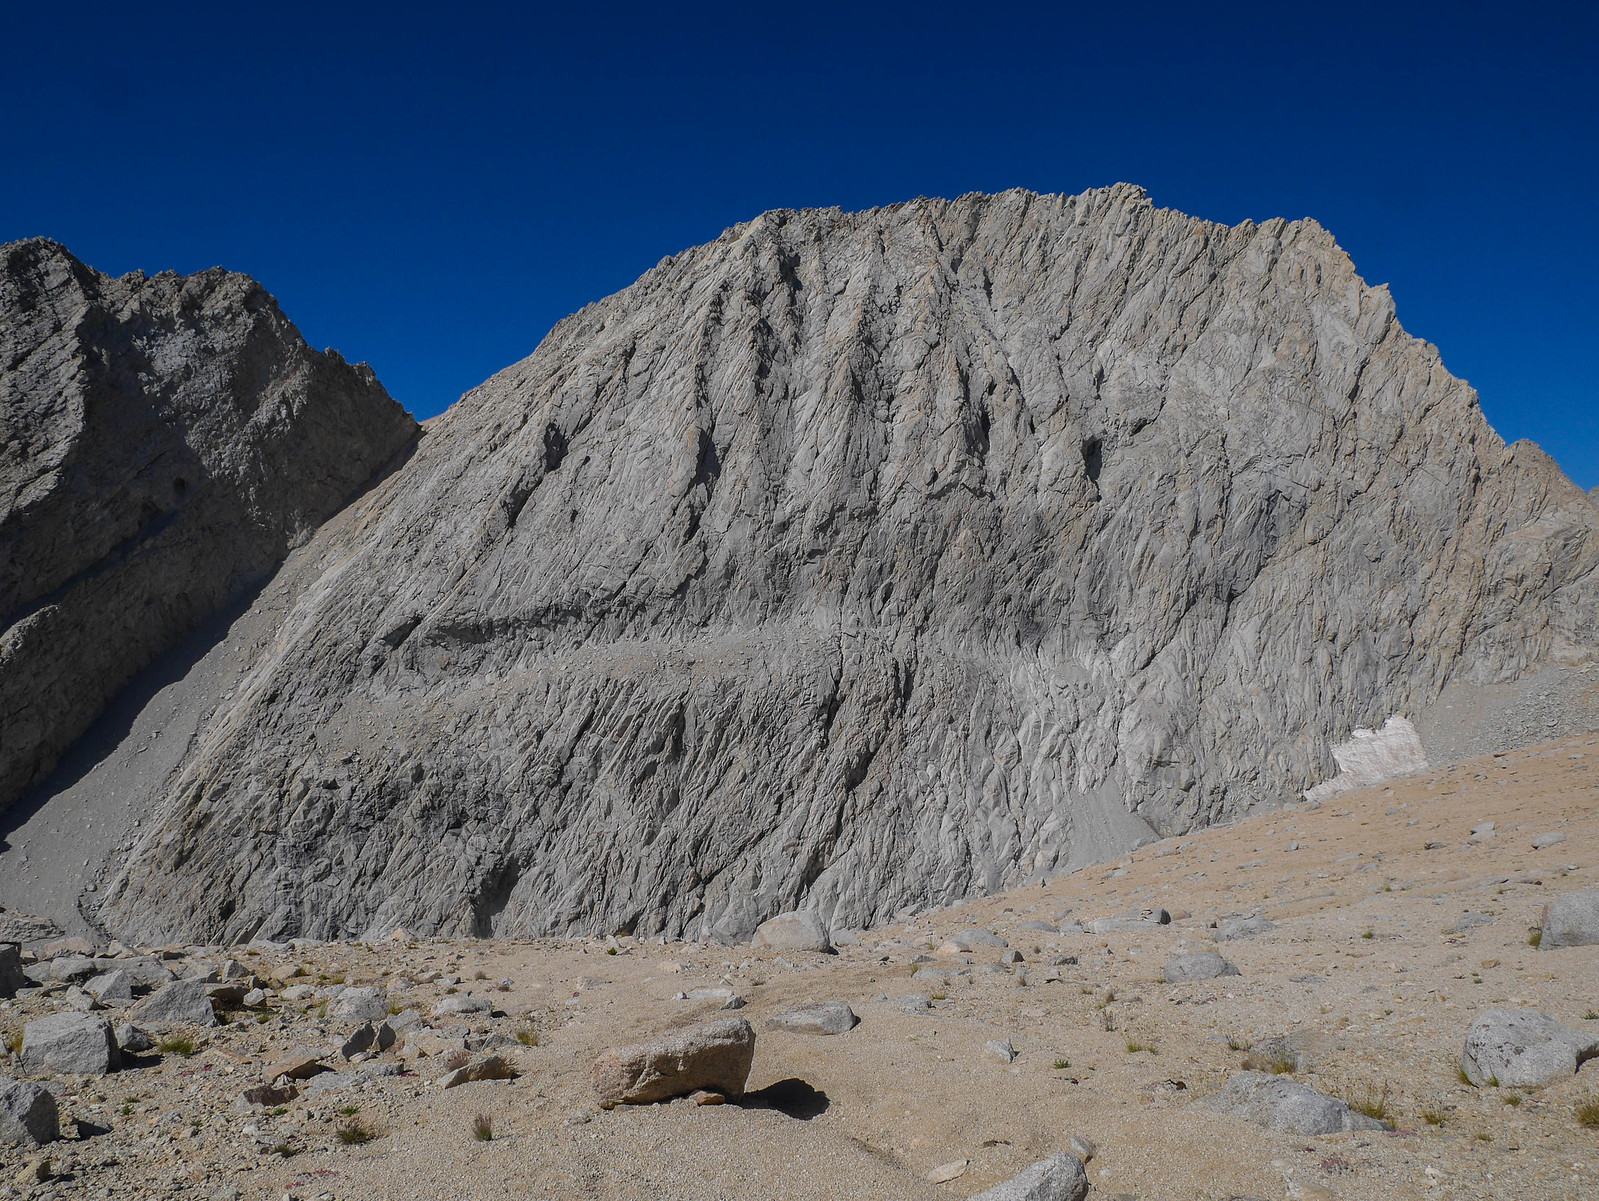 Hrmm looks like this sandy slope just falls off a cliff (Junction Peak behind the dropoff)